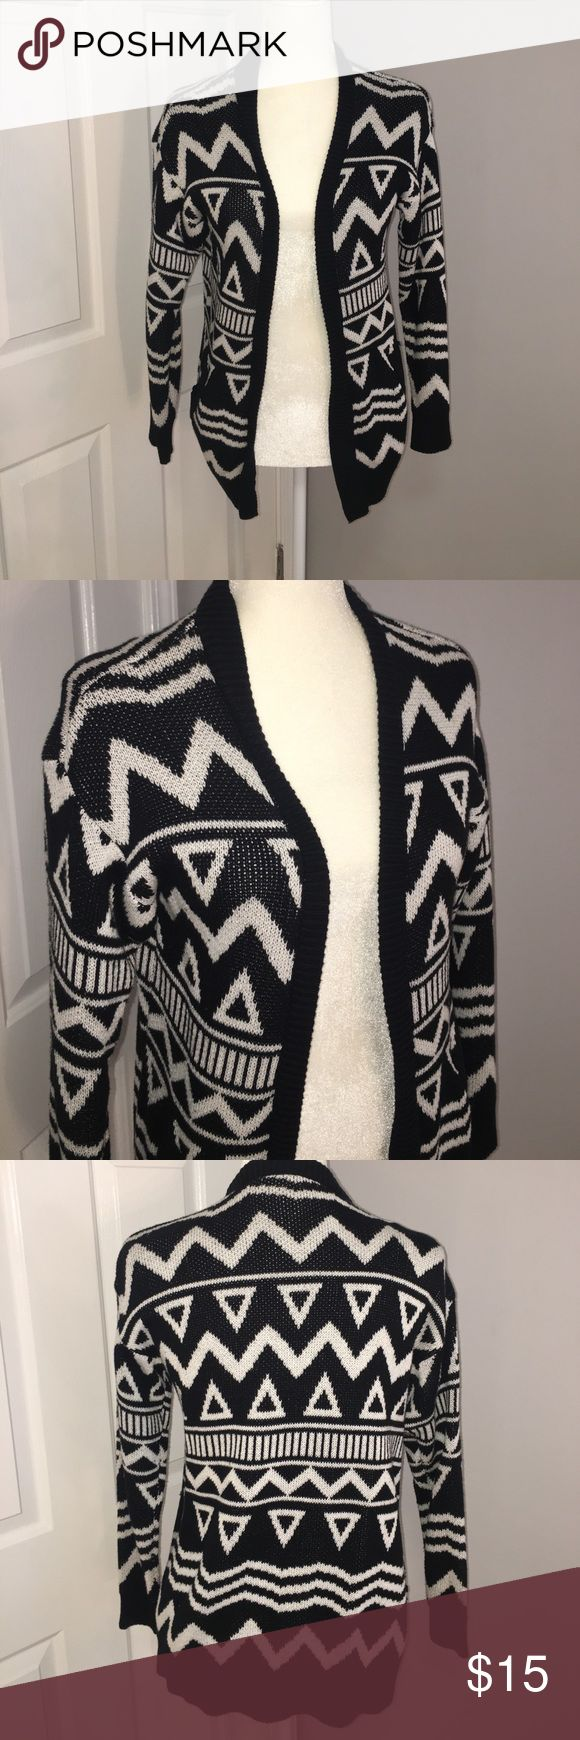 Tribal print cardigan Tribal print cardigan H&M Sweaters Cardigans